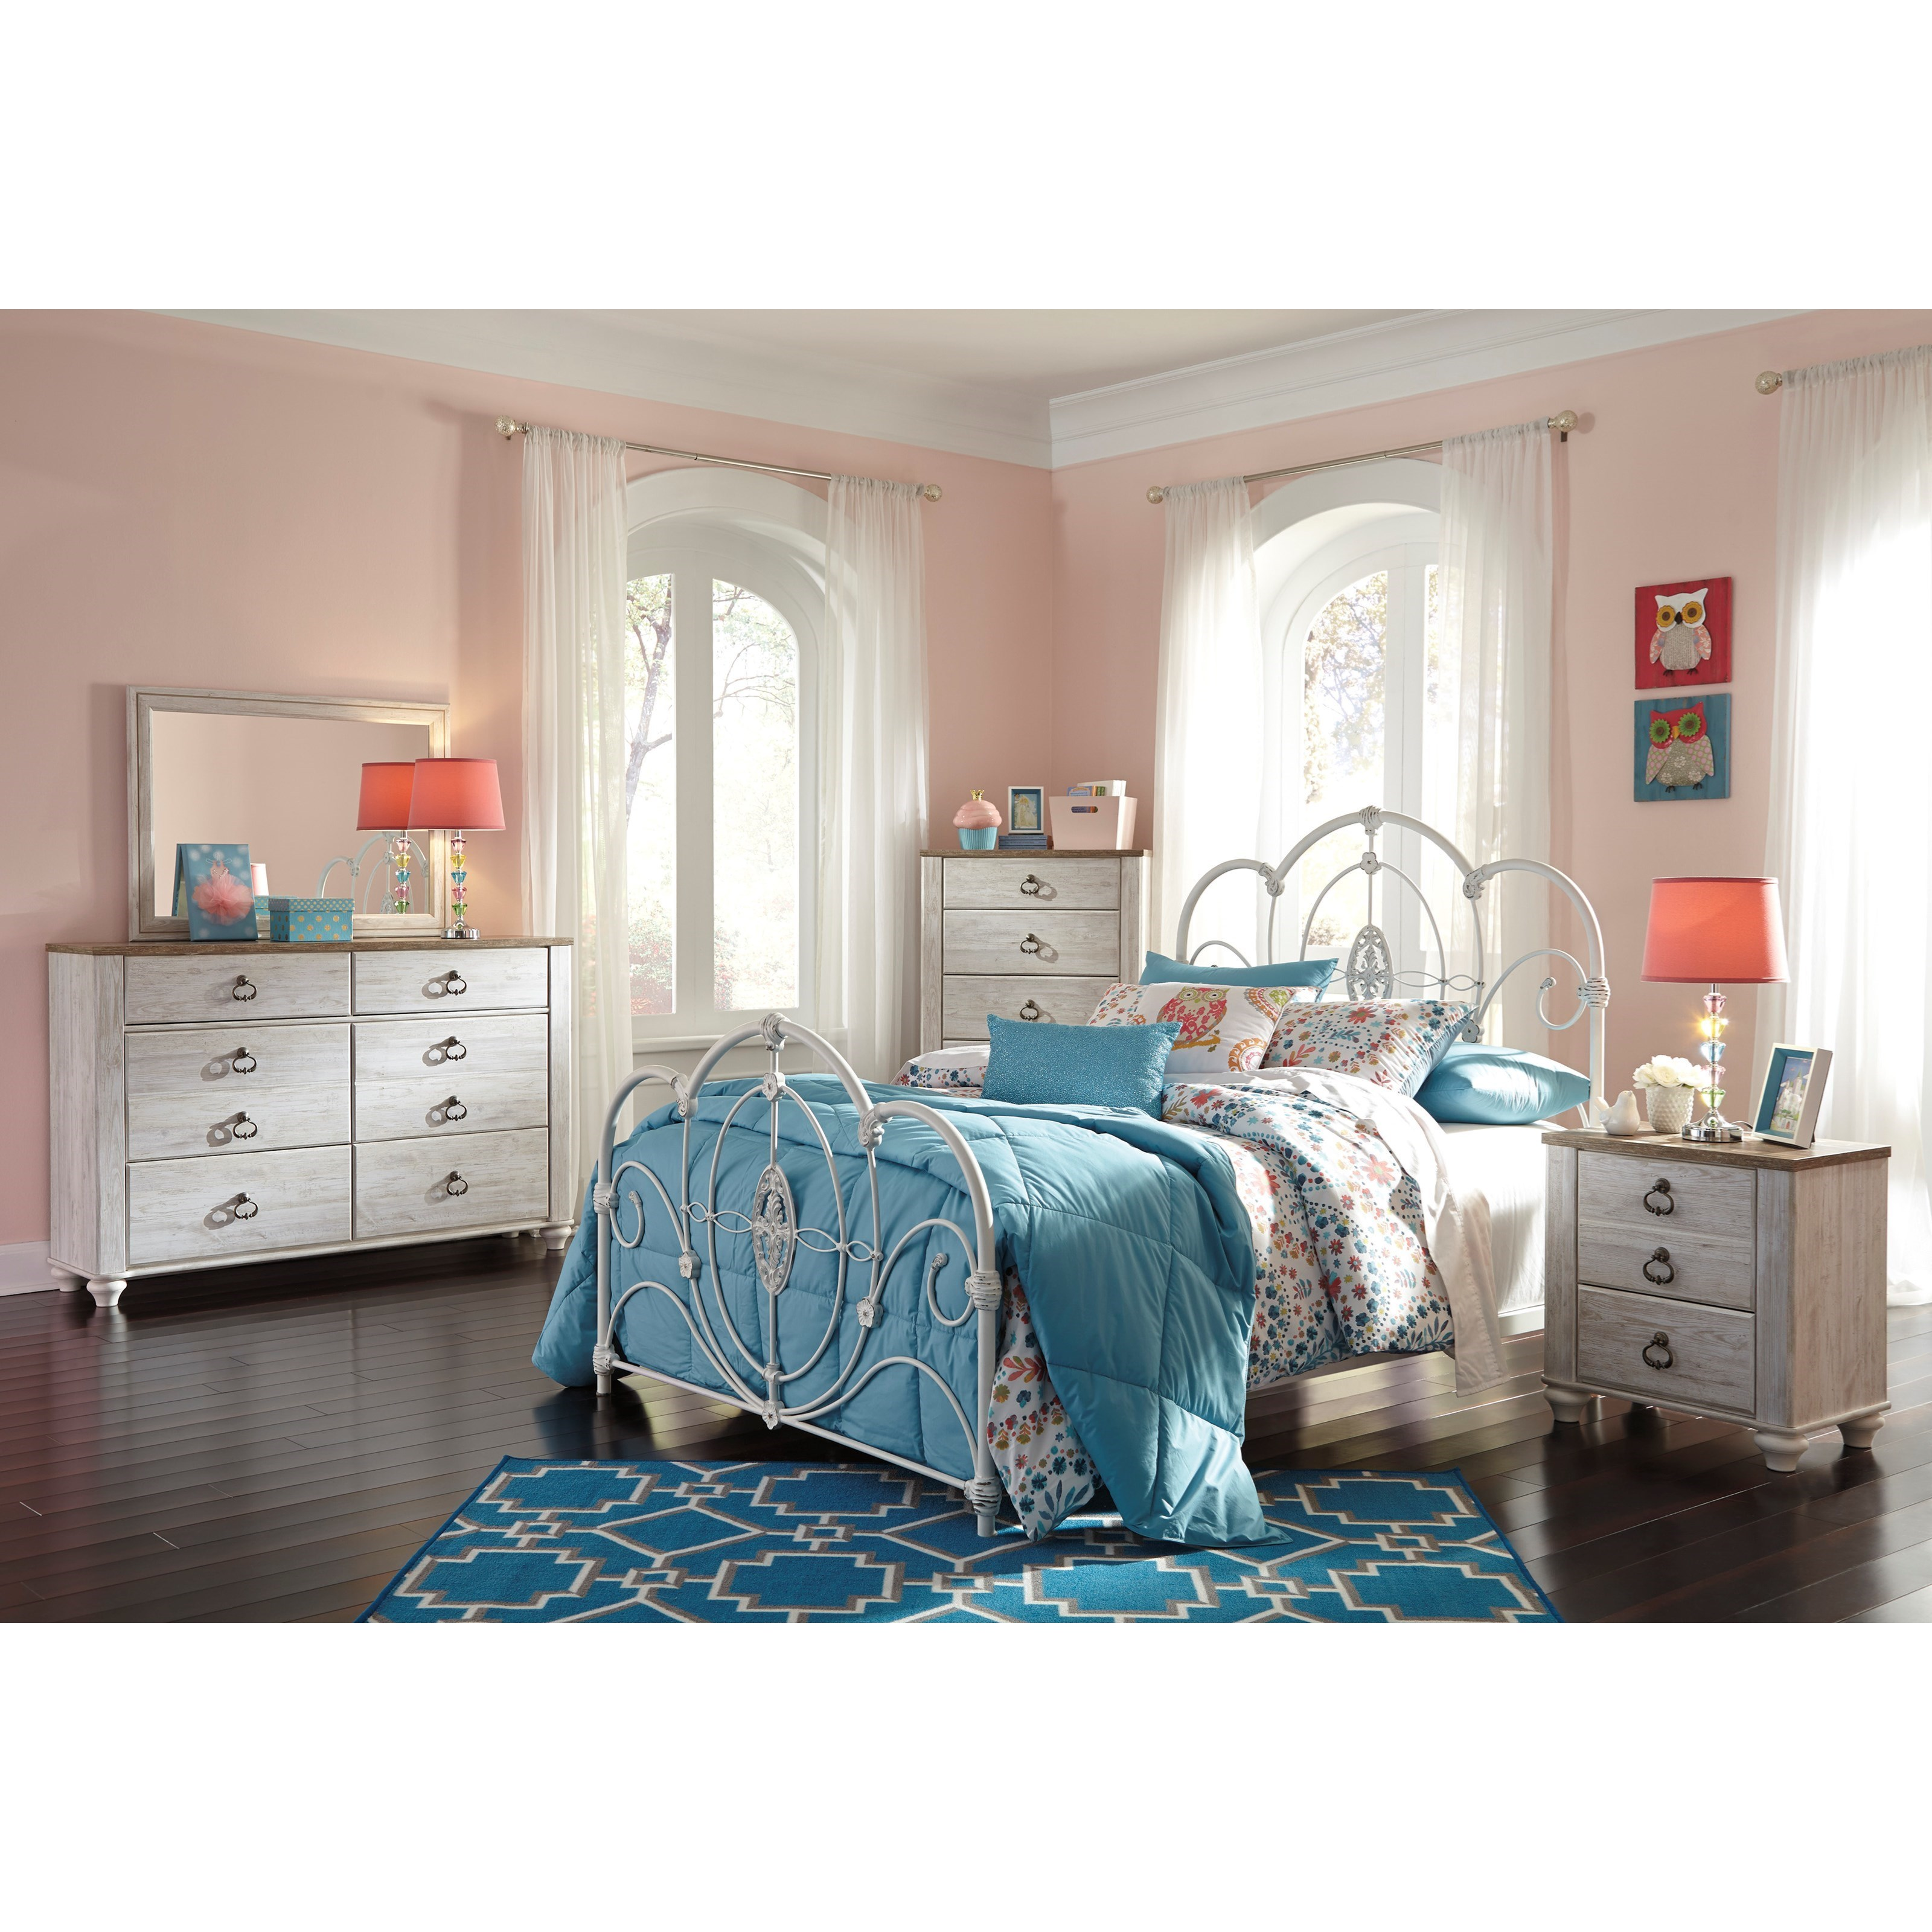 Signature Design By Ashley Loriday Twin Metal Bed With Decorative Scrolled Metal Embellishments